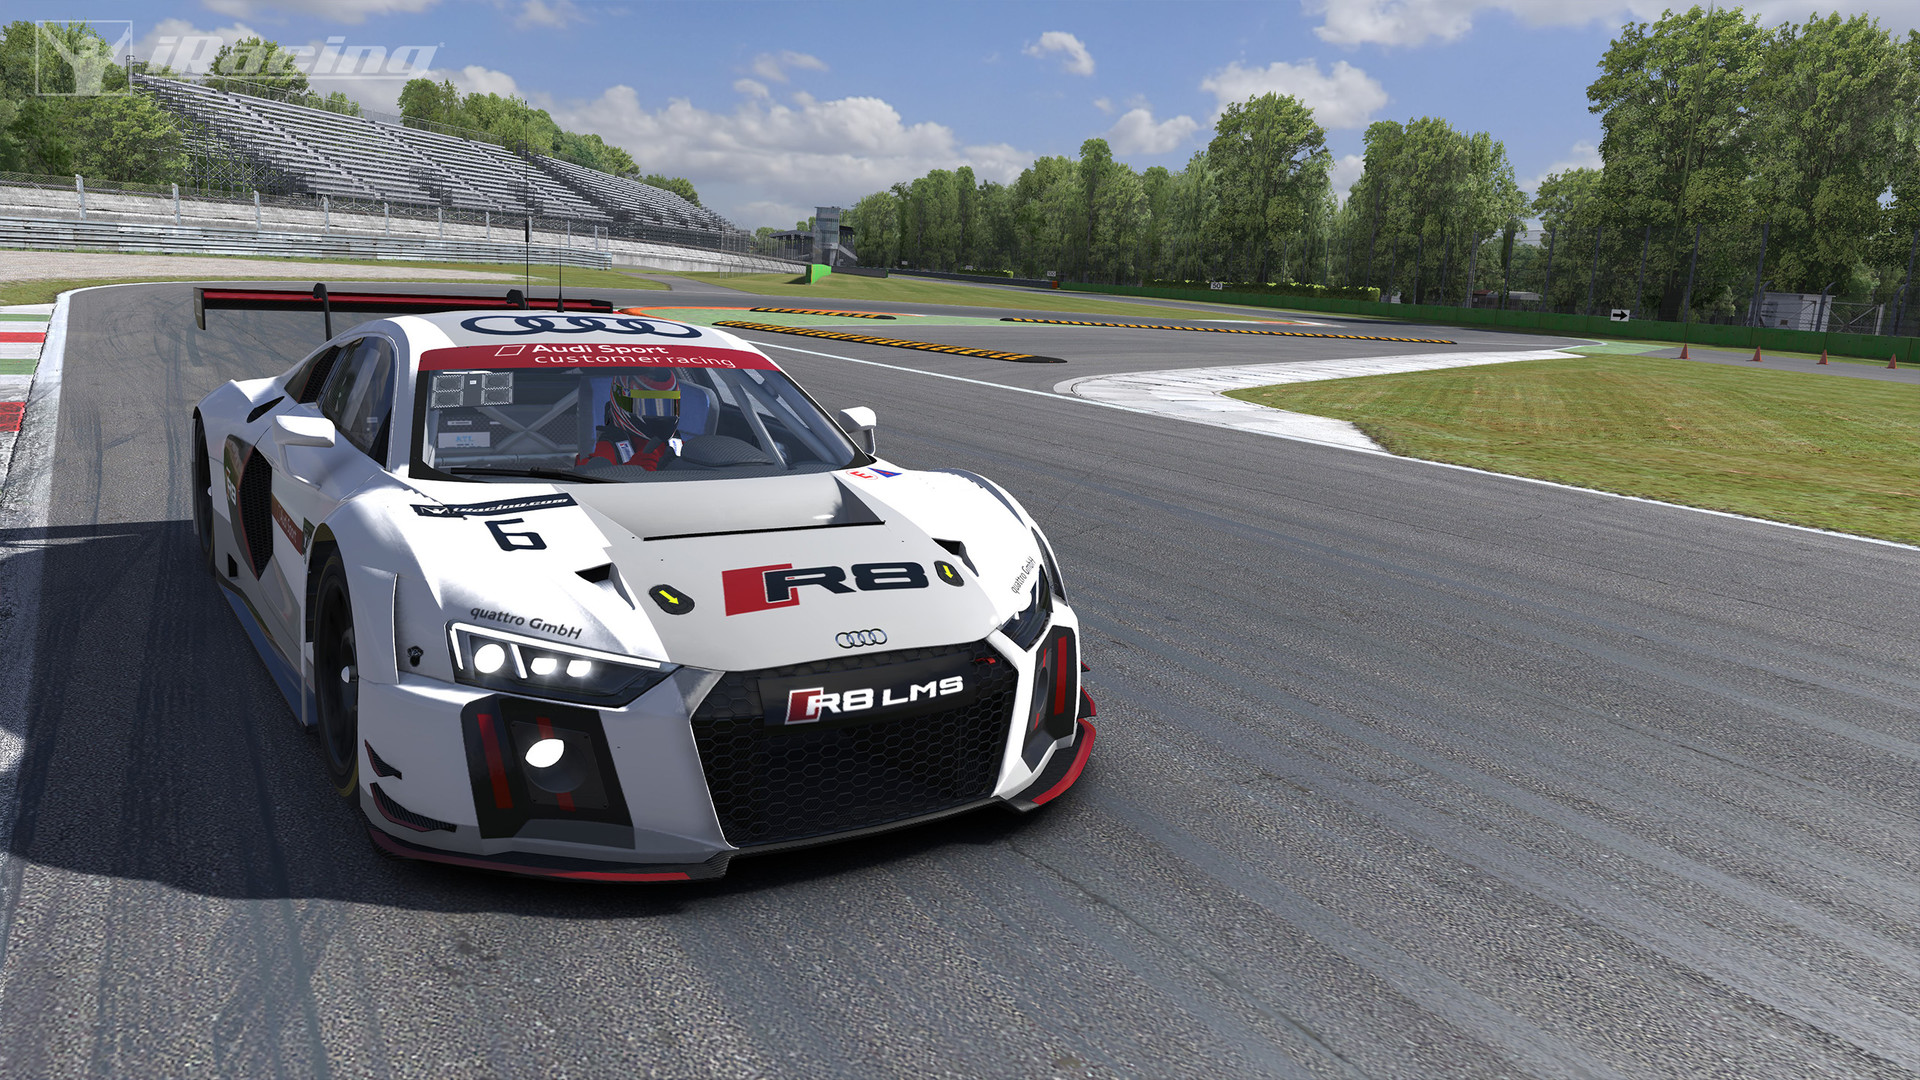 iRacing - What are the best VR games on Steam? - Slant